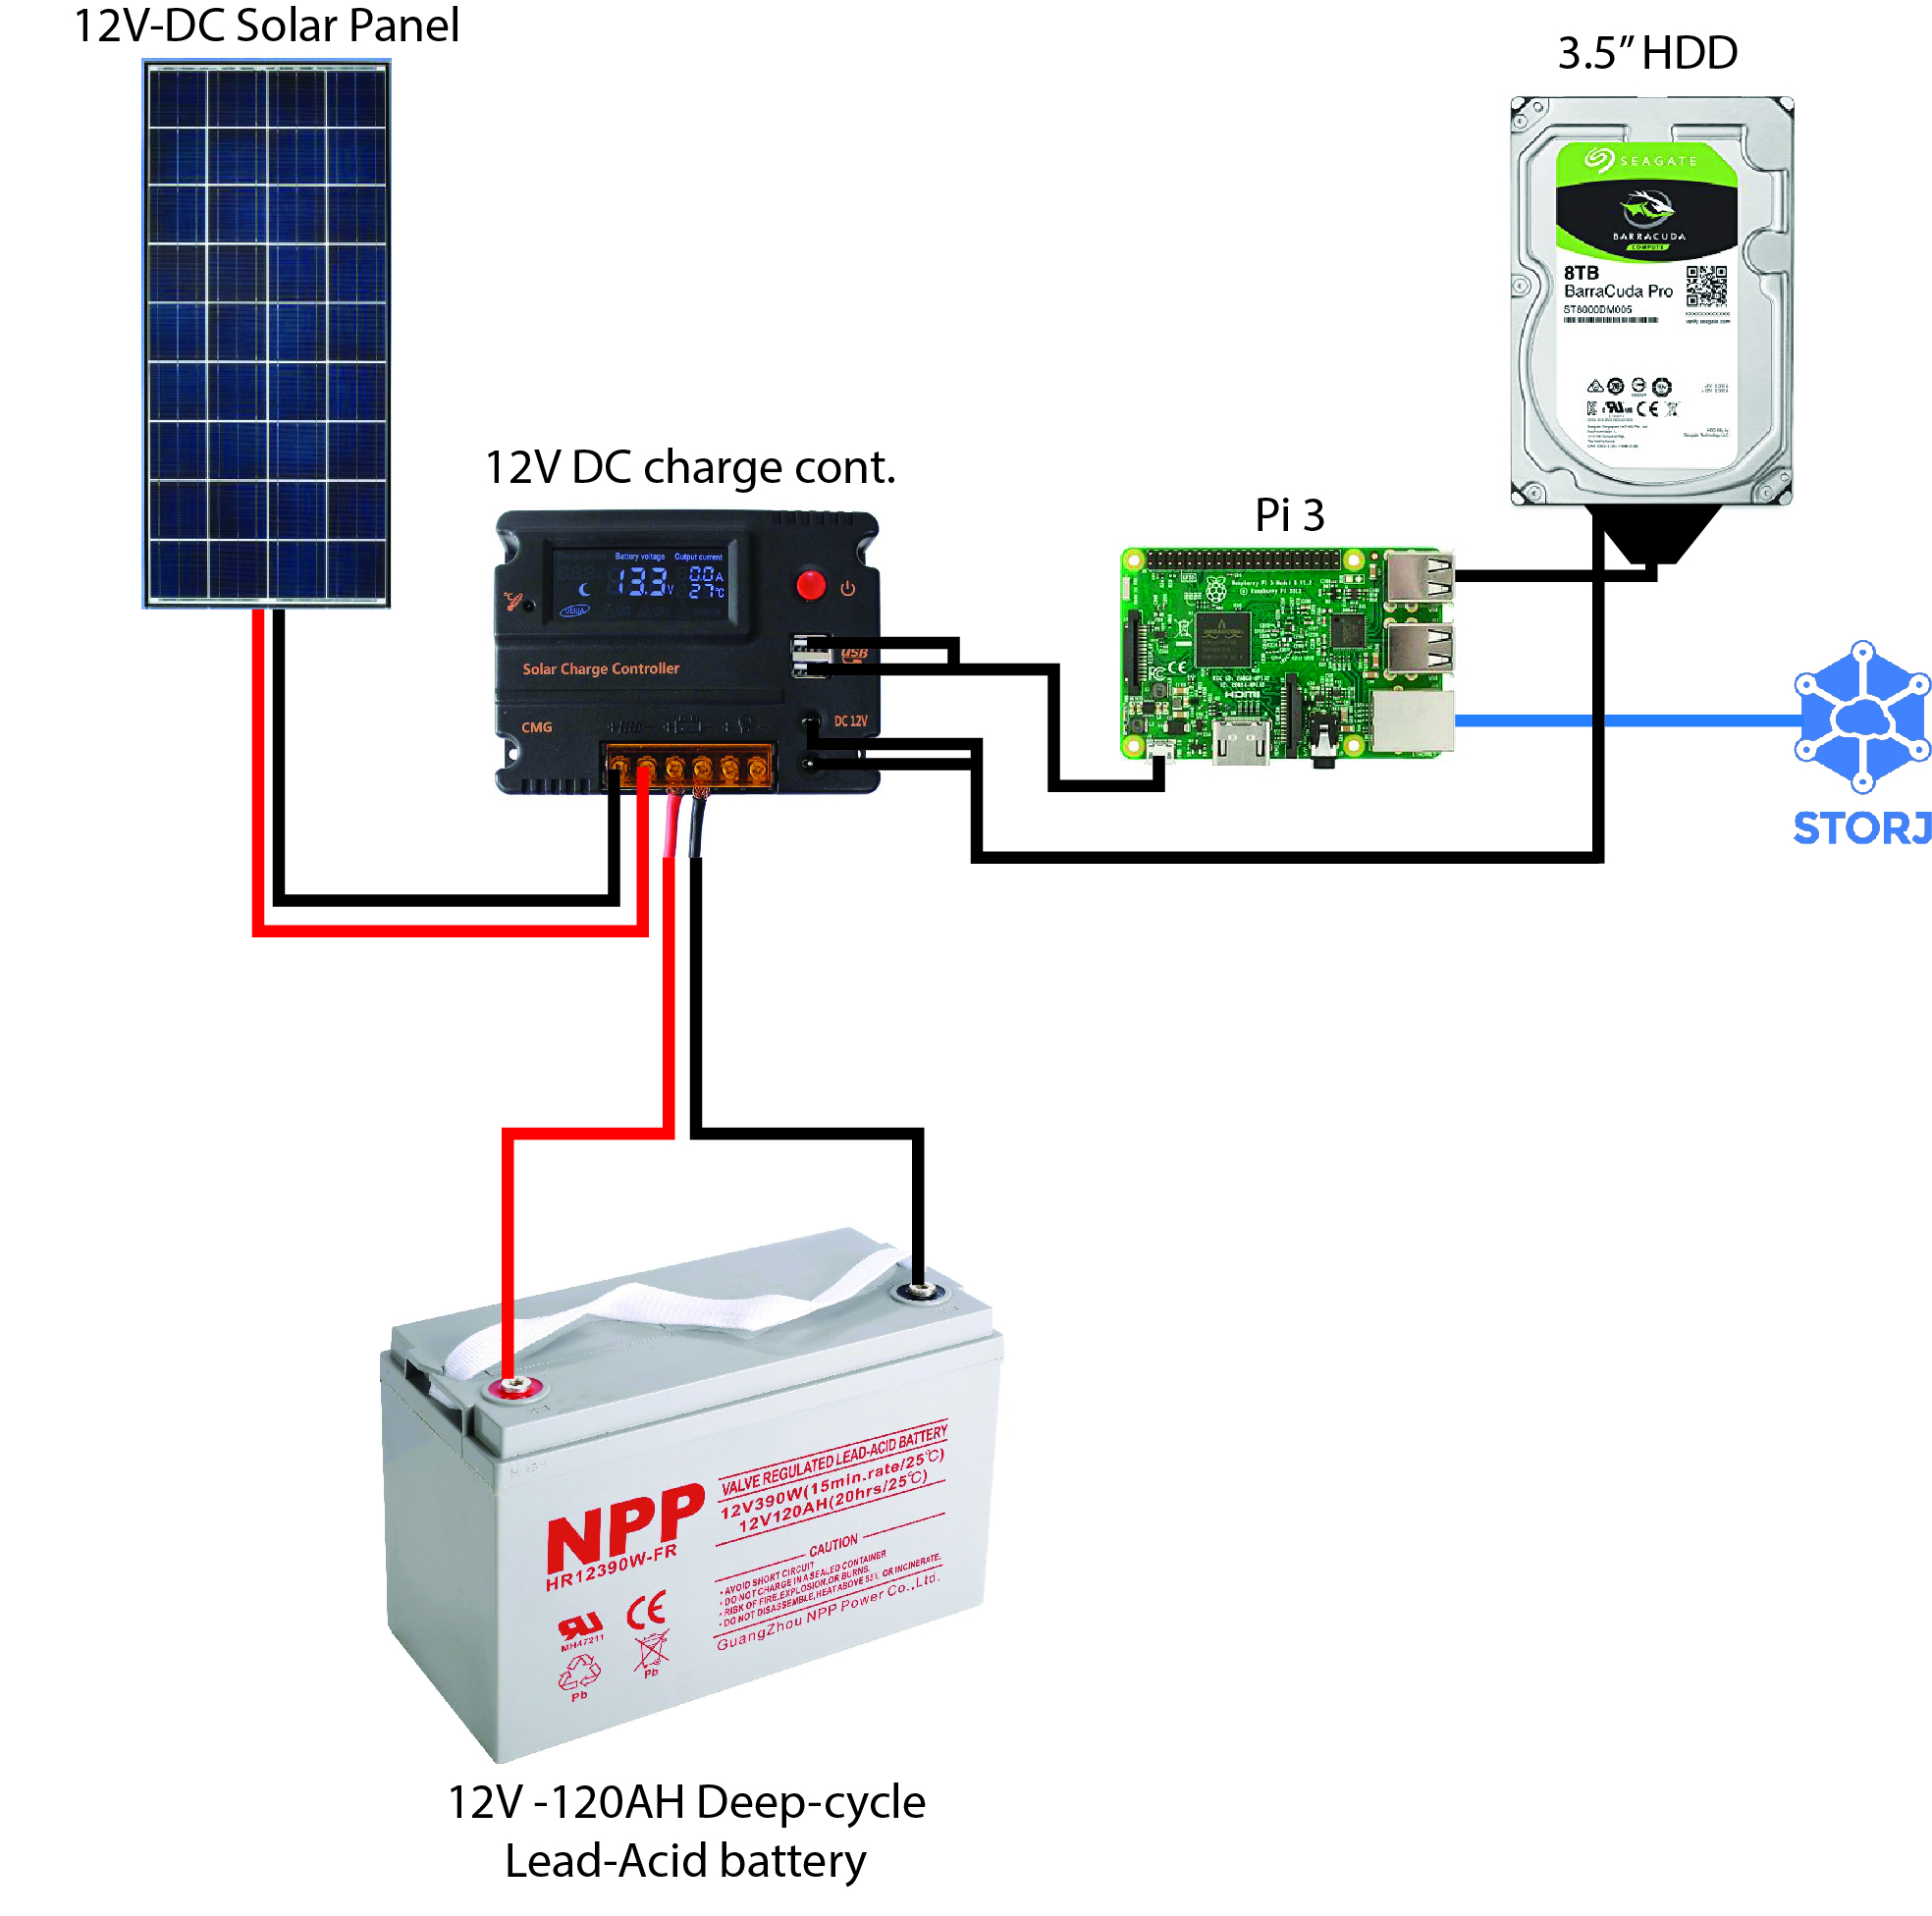 *Figure 5.1. Schematic diagram of a single-node solar farming setup.*